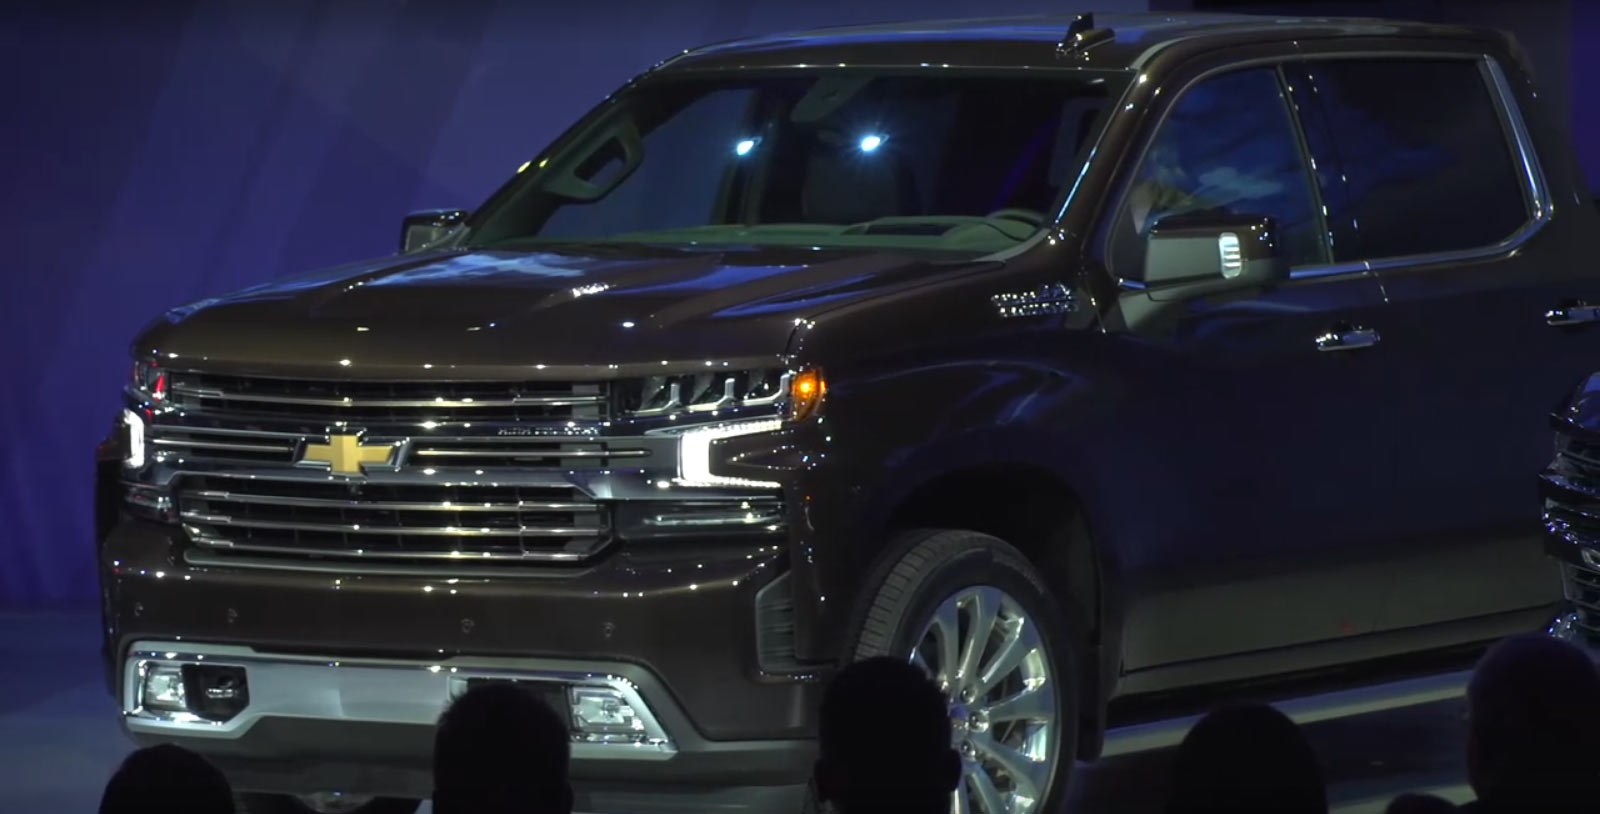 2019 Chevrolet Silverado Unveiled, Drops 450 Pounds, Gains Straight-Six Diesel